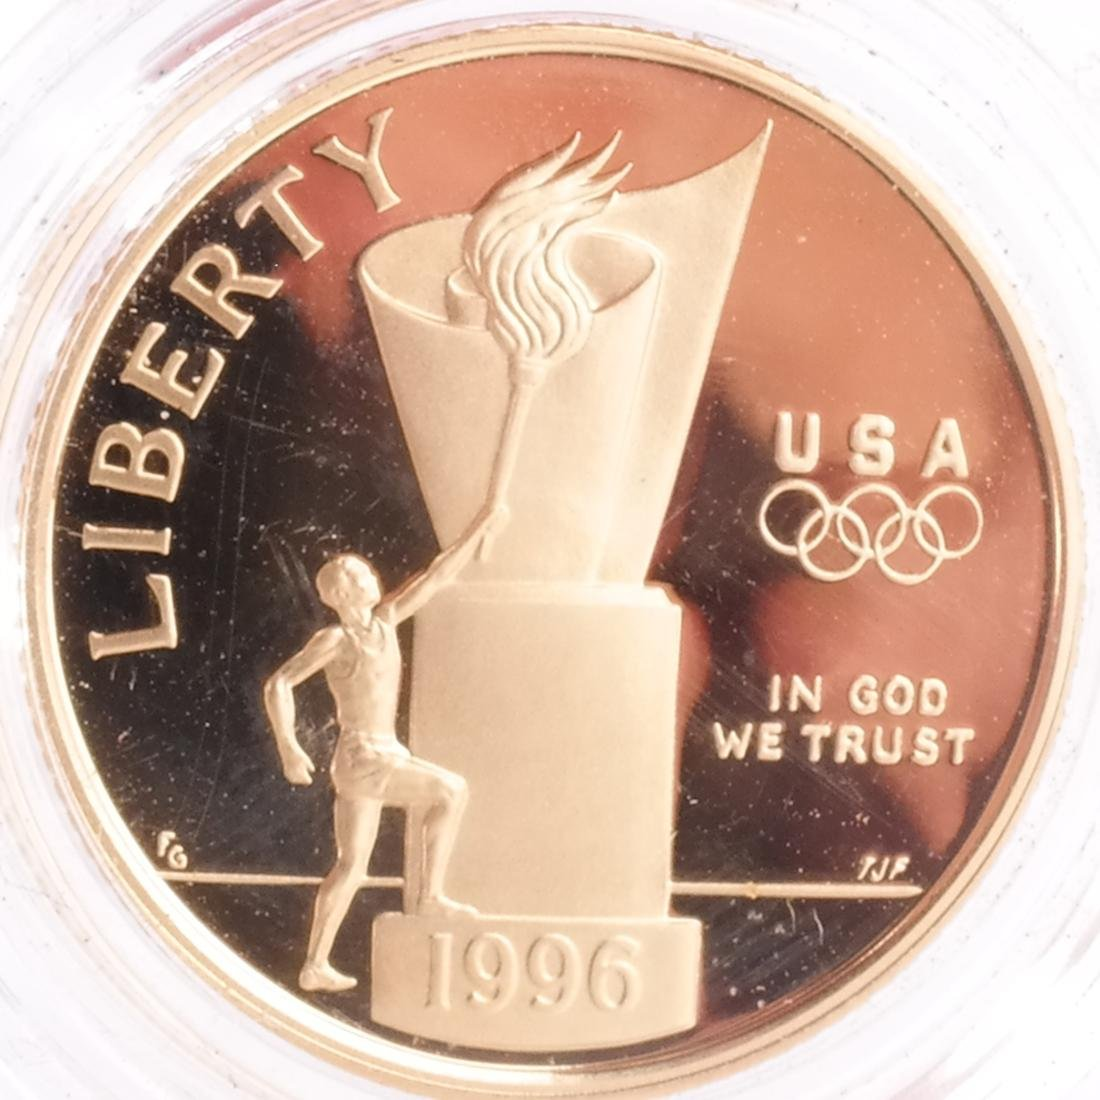 1995 $5 Olympic Proof, 5 Gold Coins - 8